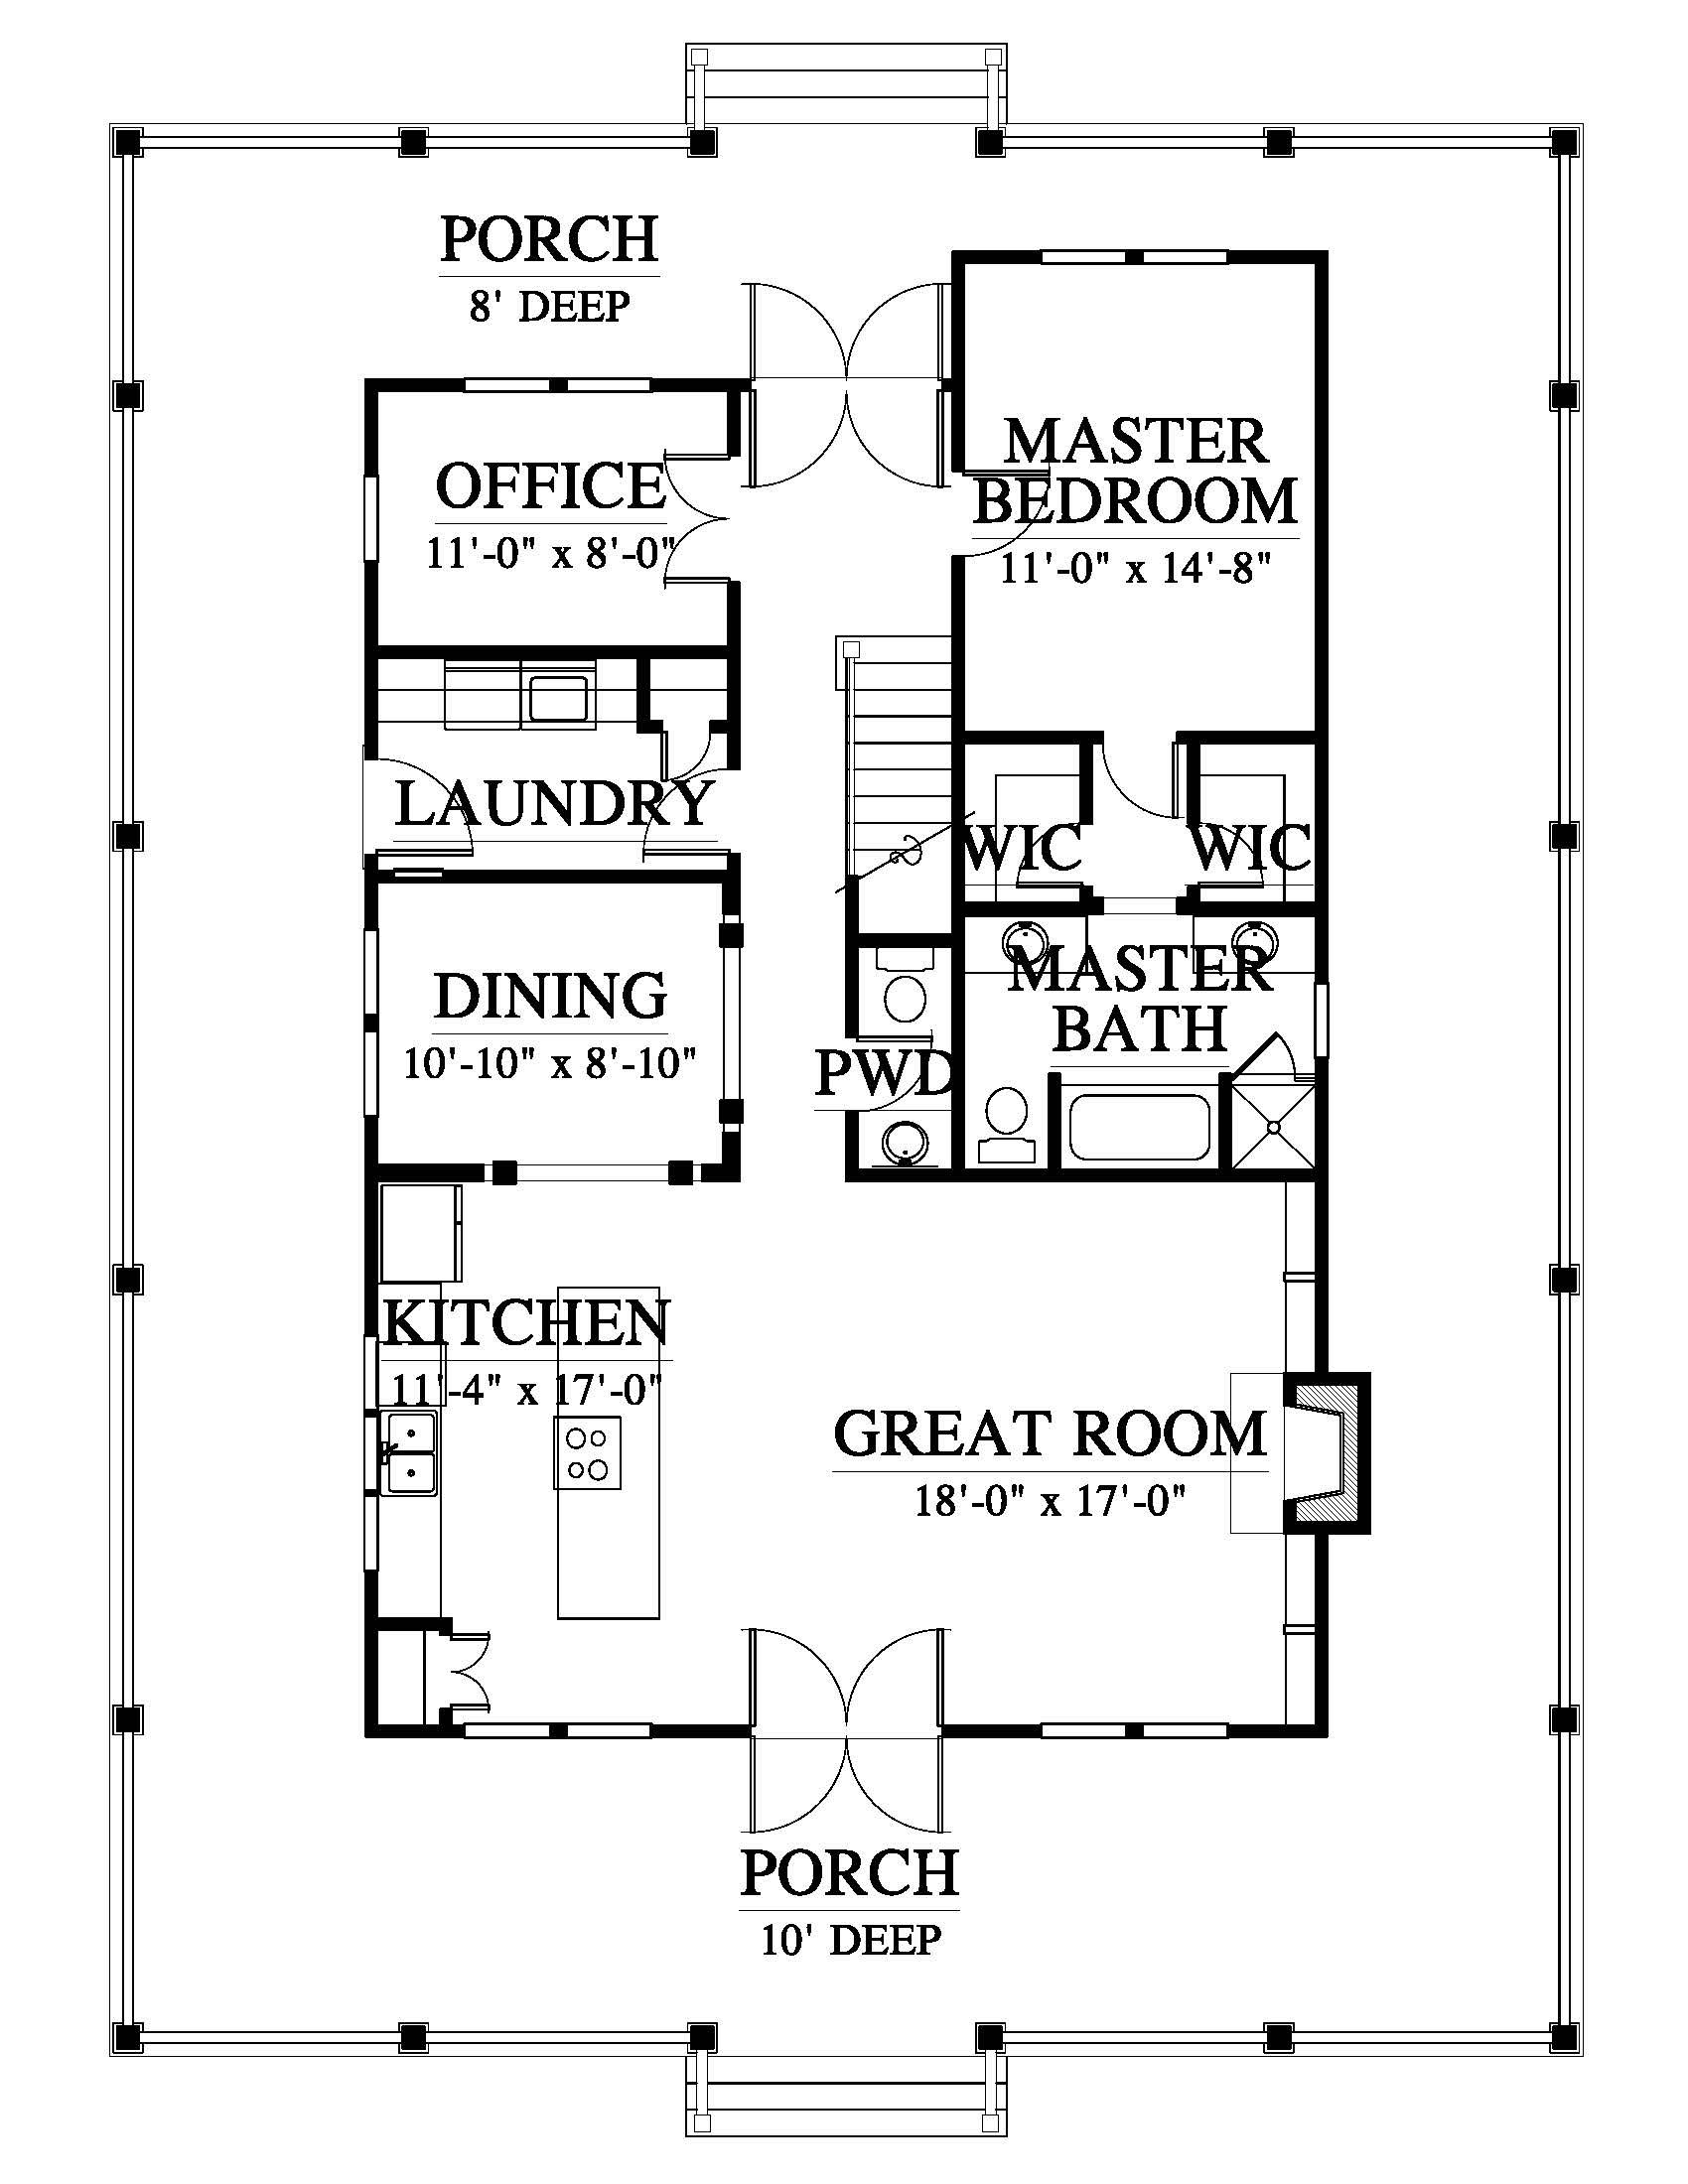 Elevation One Bedroom House Beach House Floor Plans House Plans Farmhouse